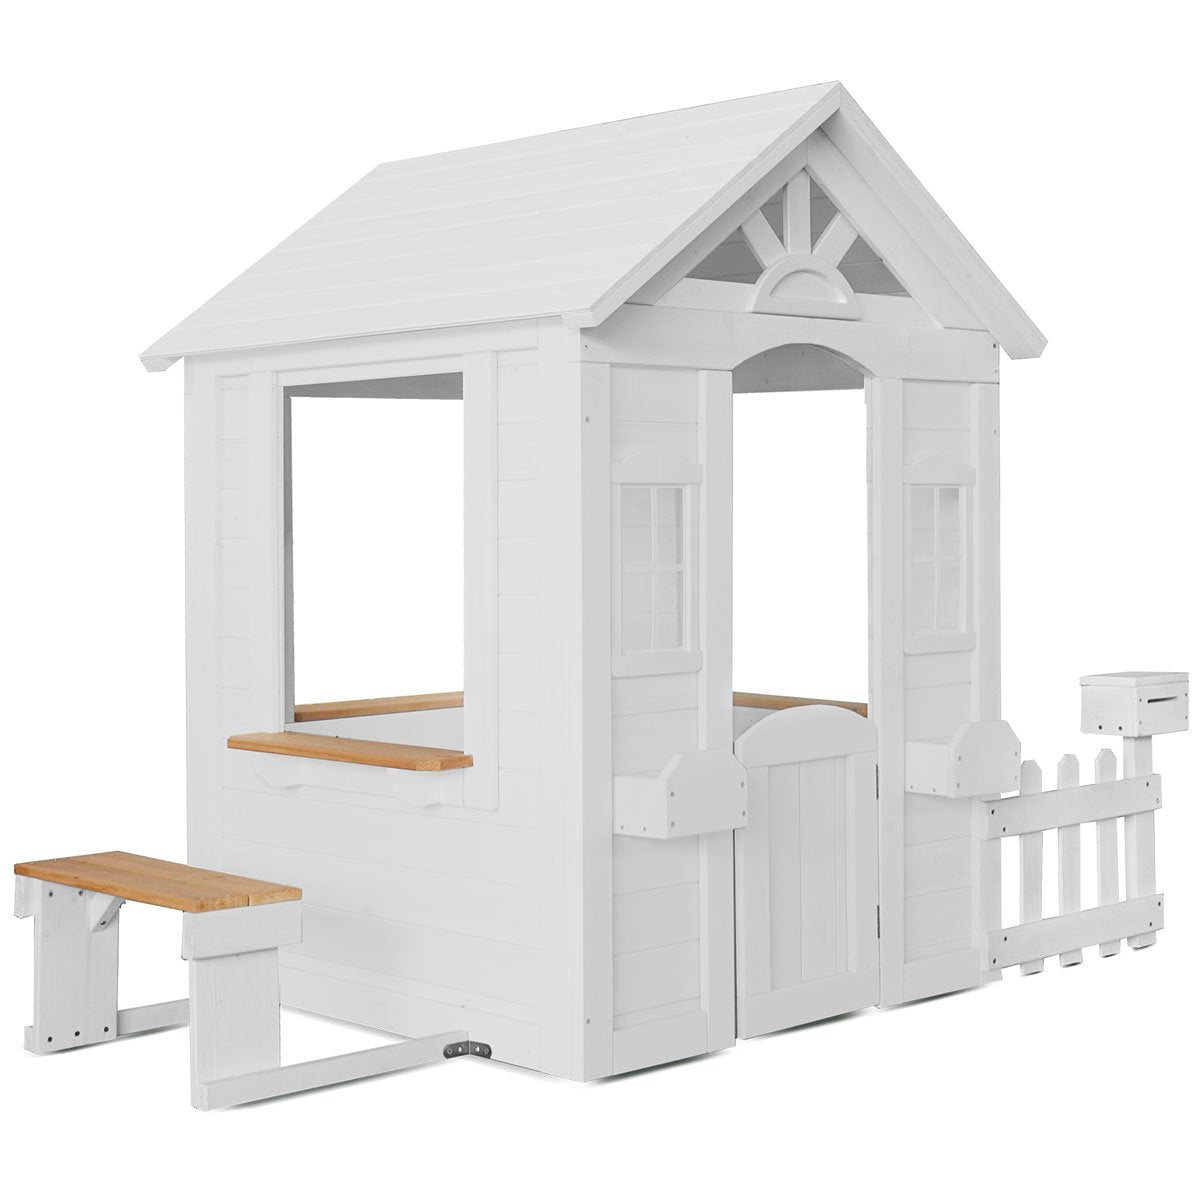 Lifespan Kids Teddy Cubby House in White (V2)